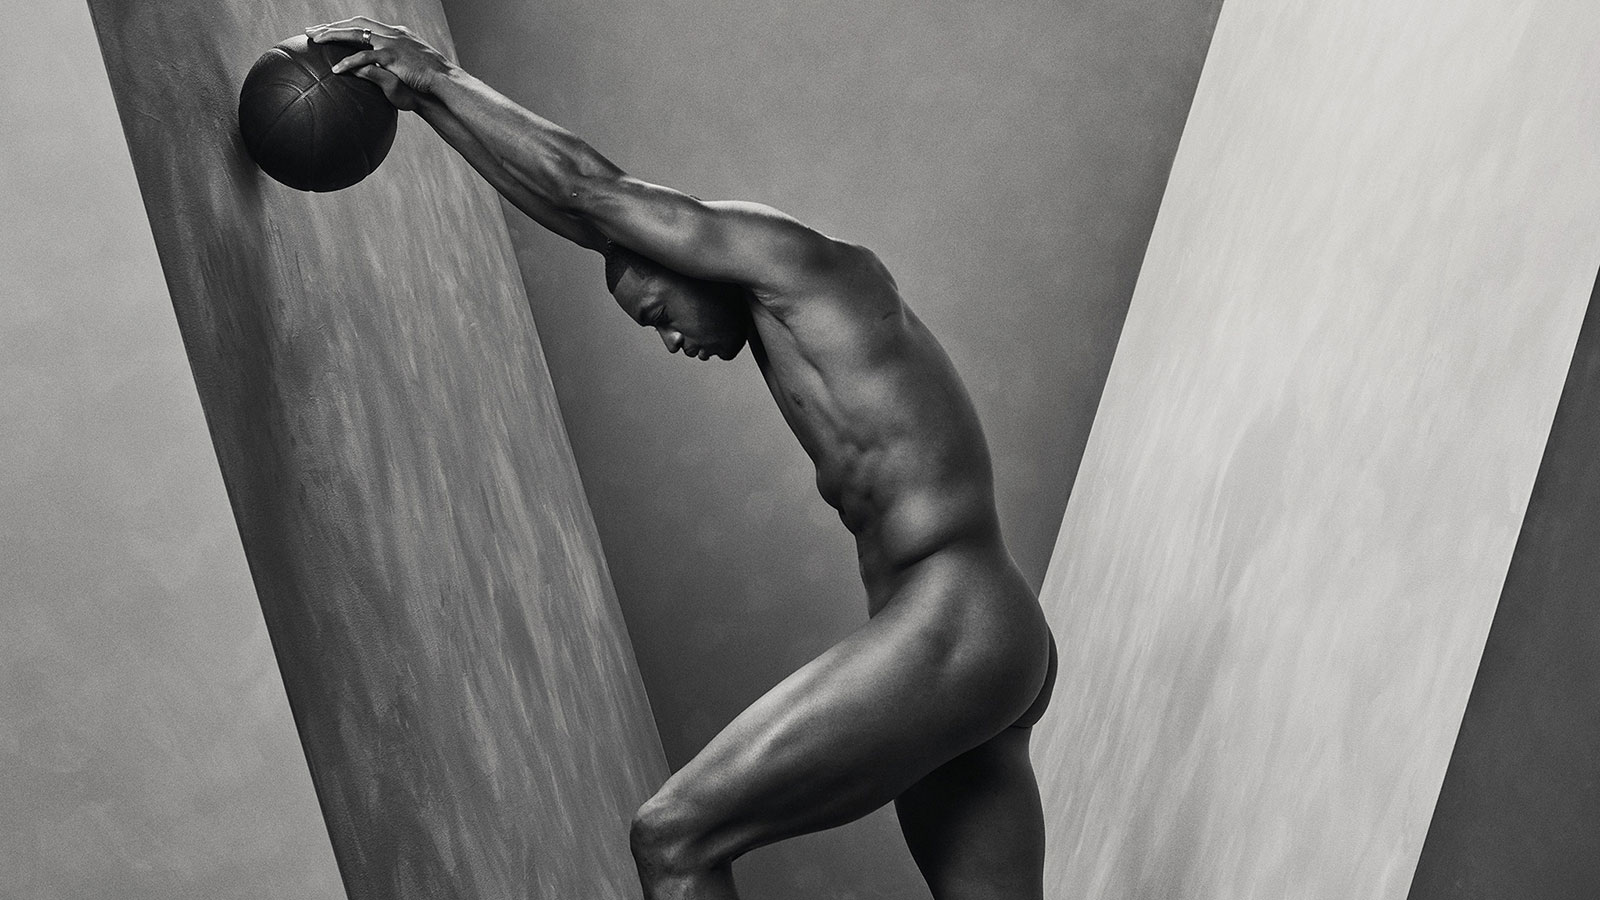 Dwyane Wade, NBA, featured in the Body Issue 2016: Fully Exposed on ESPN the Magazine